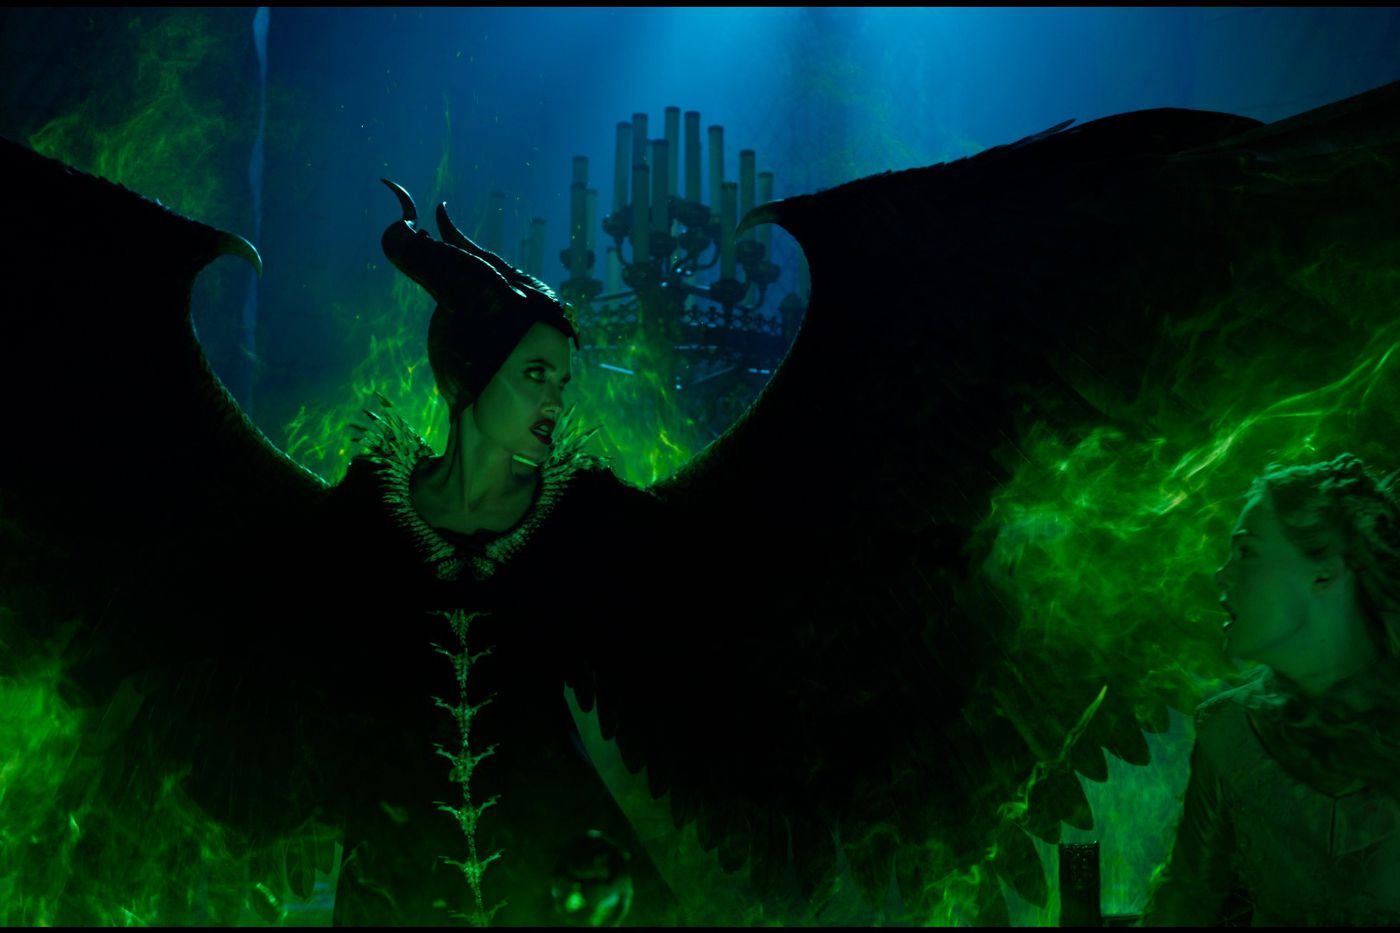 Maleficent Mistress Of Evil Review A Boldly Bonkers Fantasy Film The Verge